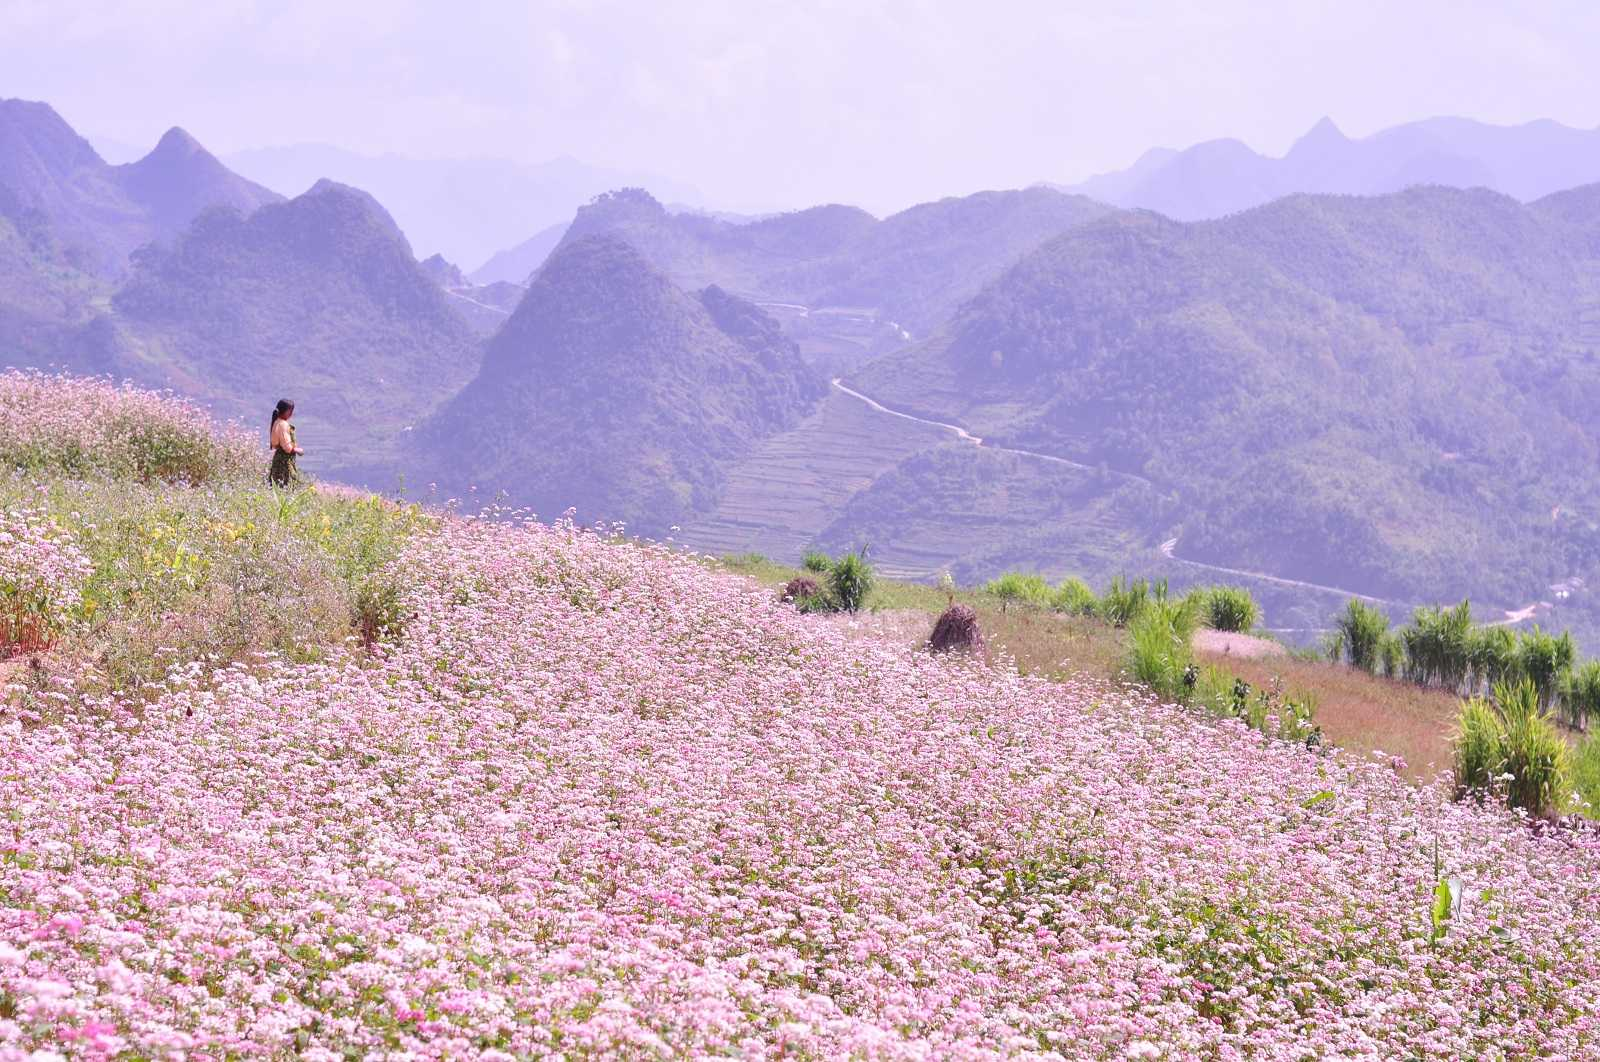 Stunning flower blooms where to see them in asia these beautiful flowers can be witnessed in bloom around late october and early november every year terrace upon terrace flourishes in the mountainous izmirmasajfo